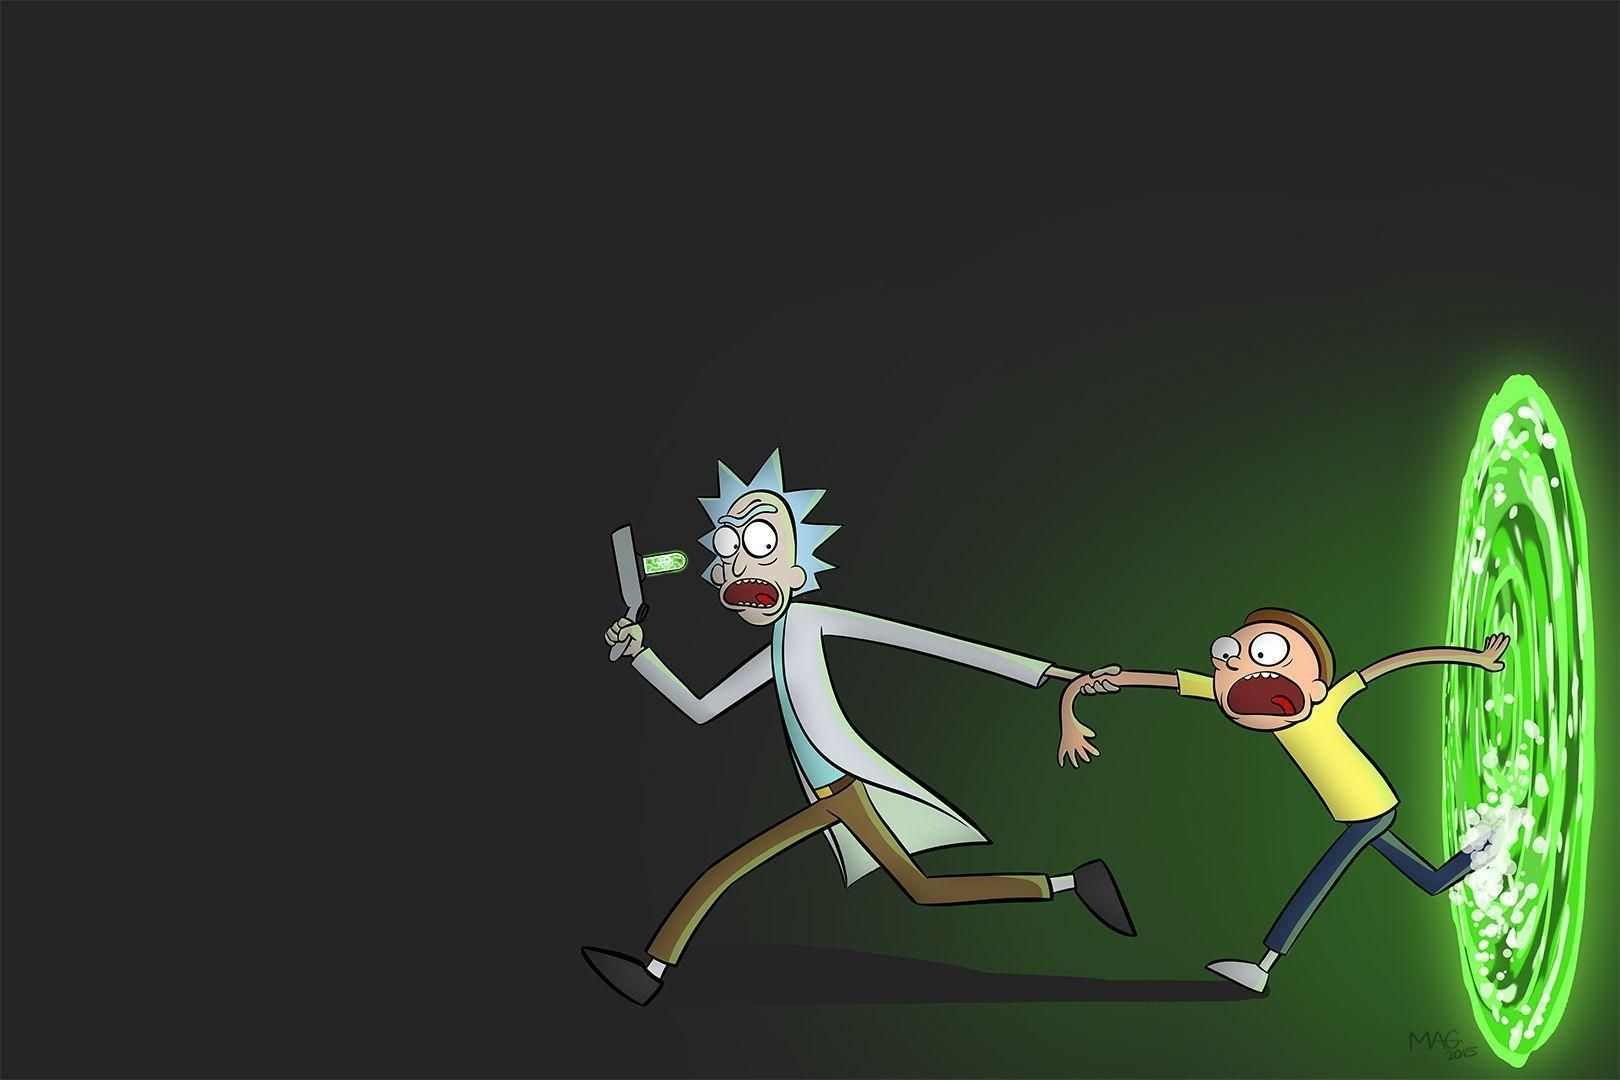 Rick And Morty Wallpapers Wallpaper Cave Regarding Rick And Morty Wallpapers Laptop Rick And Morty Wallpapers Cartoon Wallpaper Hypebeast Wallpaper